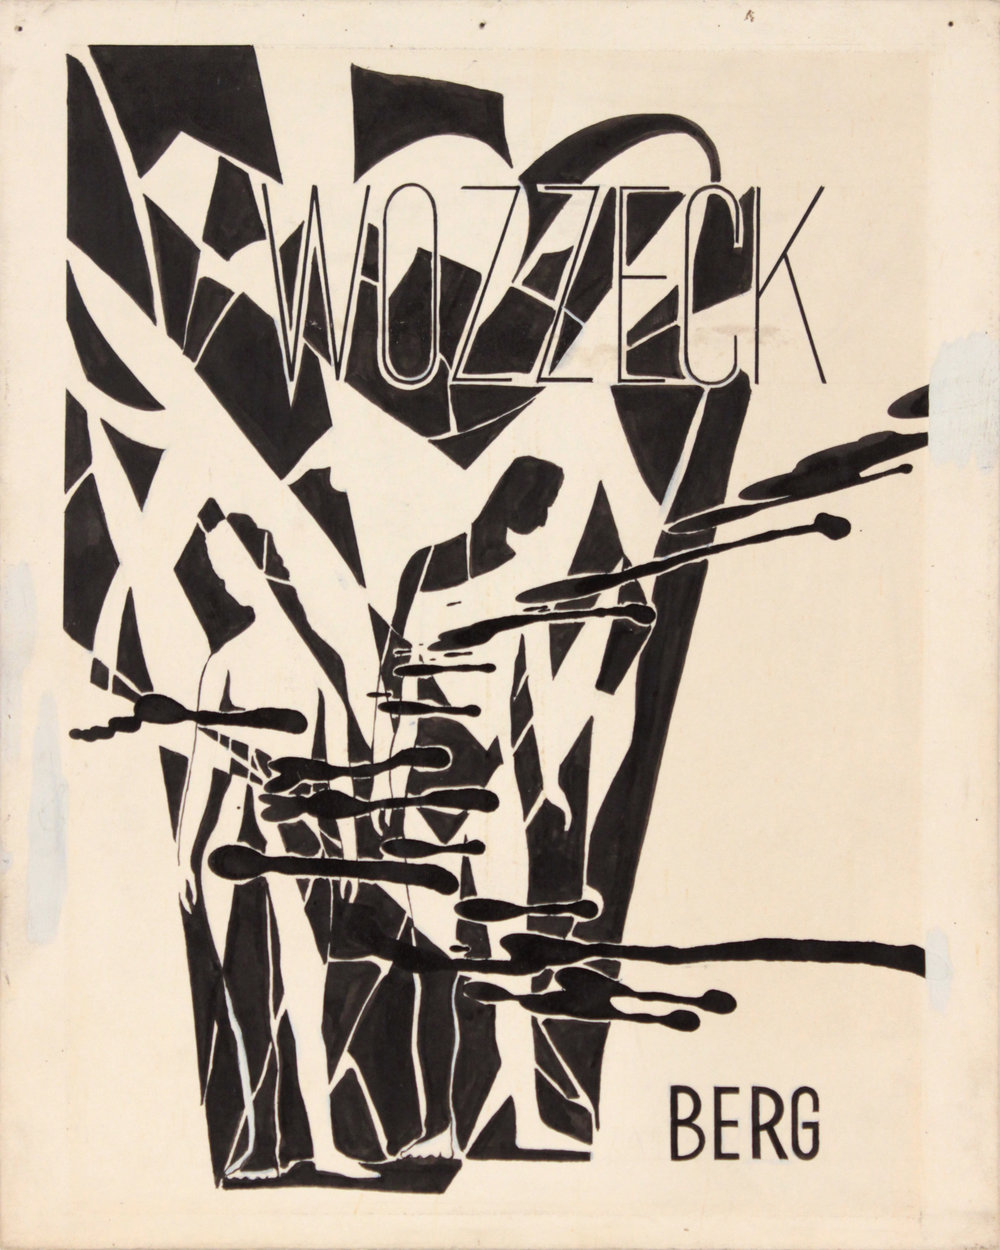 2. 1940's c, Image 49_Wozzeck Berg, Poster Paint on Board, 10x8, PPS 1423.JPG